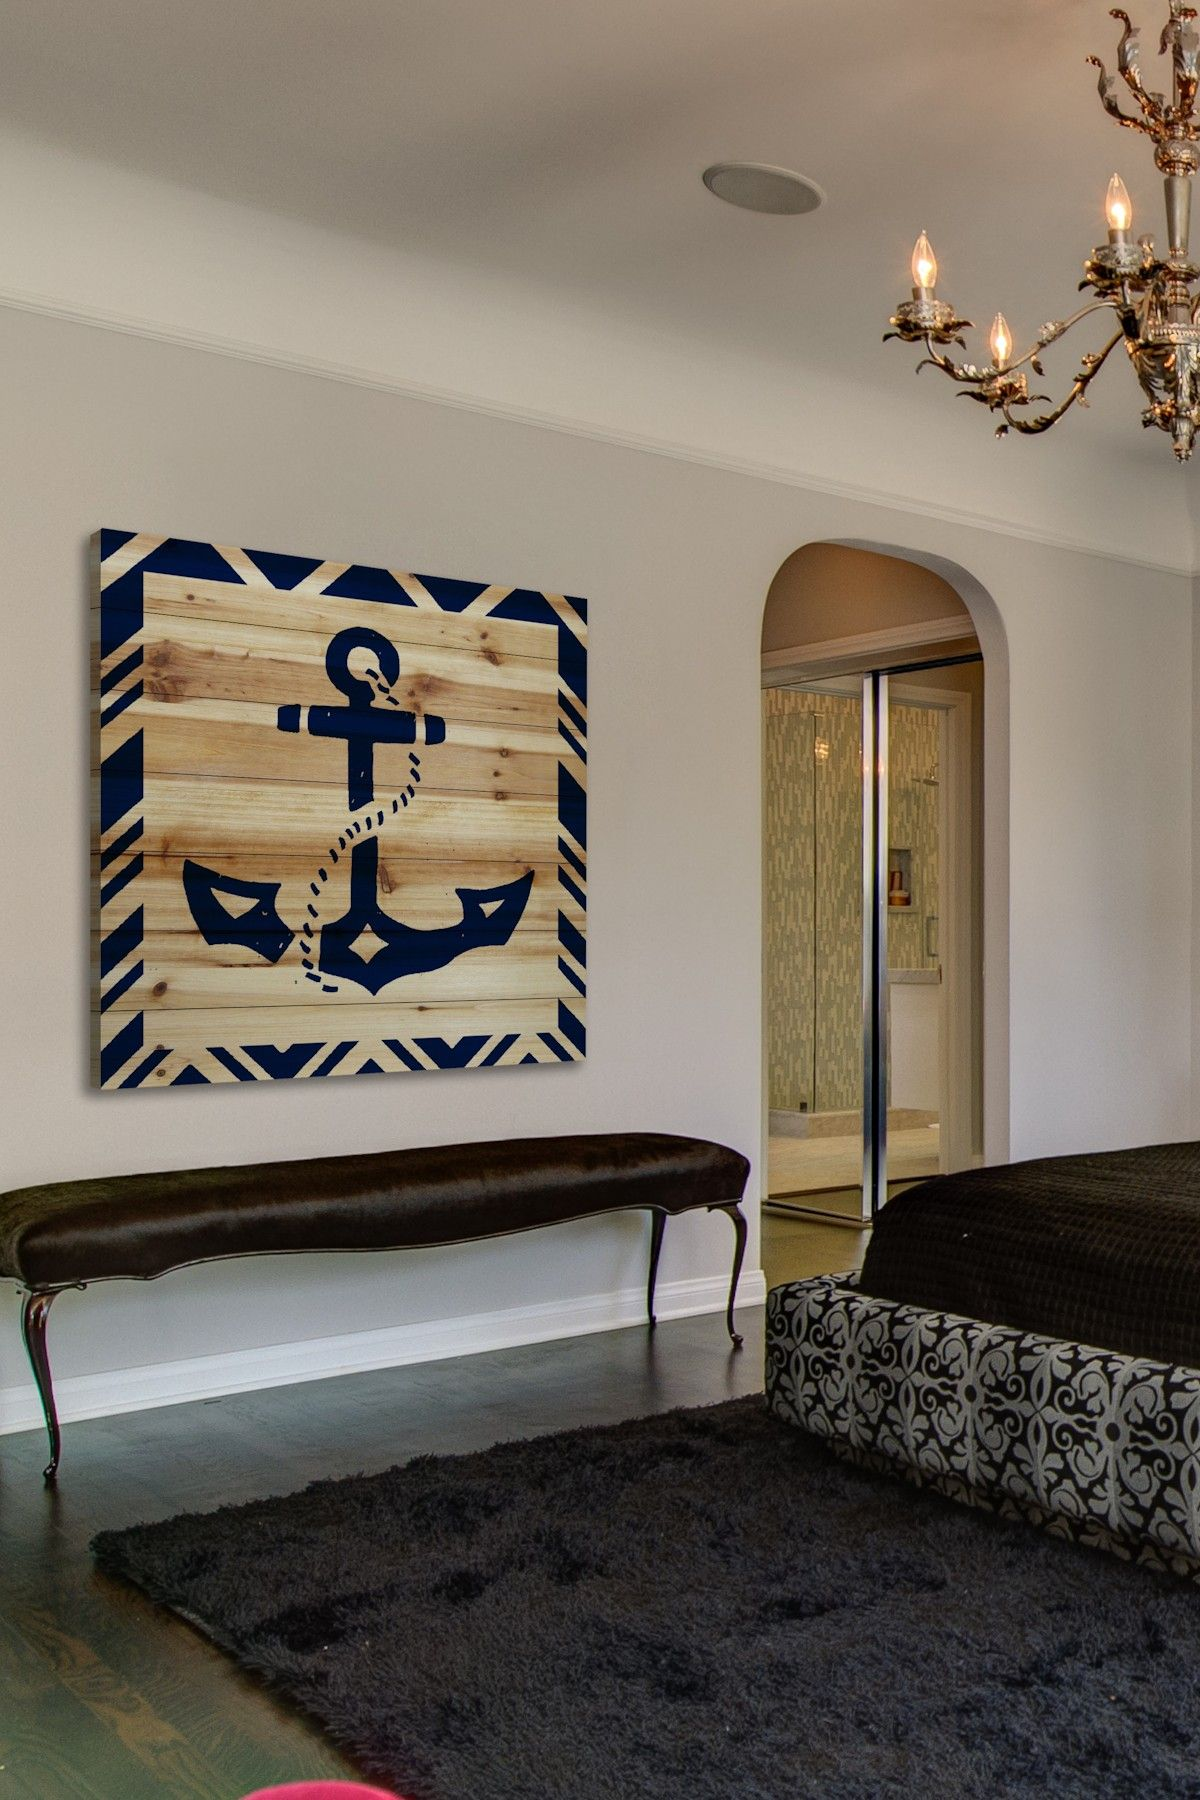 Diy Idea For A Large Nautical Wall Decor Piece Anchor Painted On